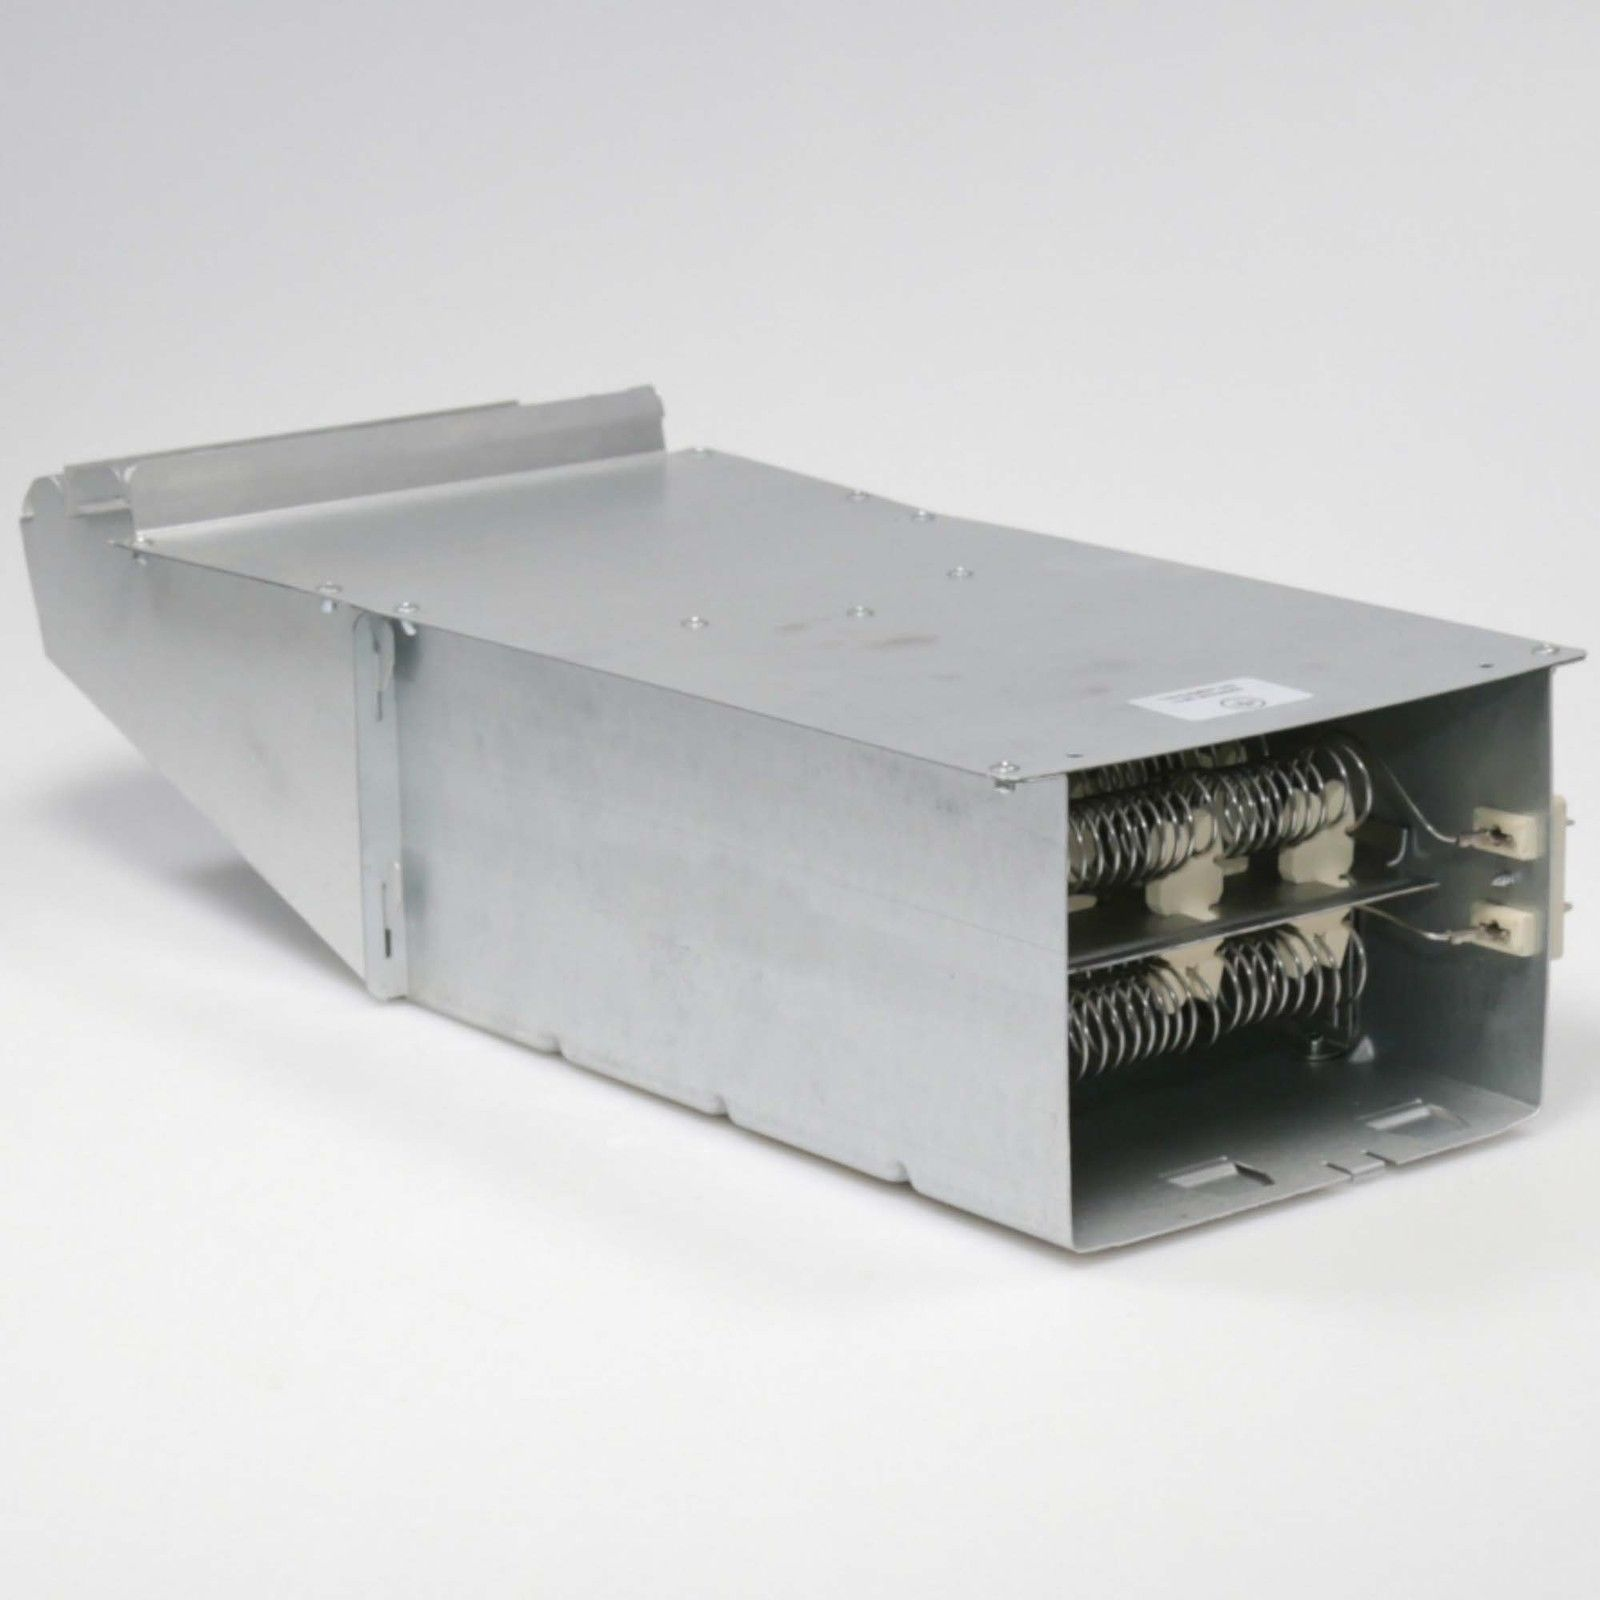 00436460, Electric Dryer Heating Element for Bosch